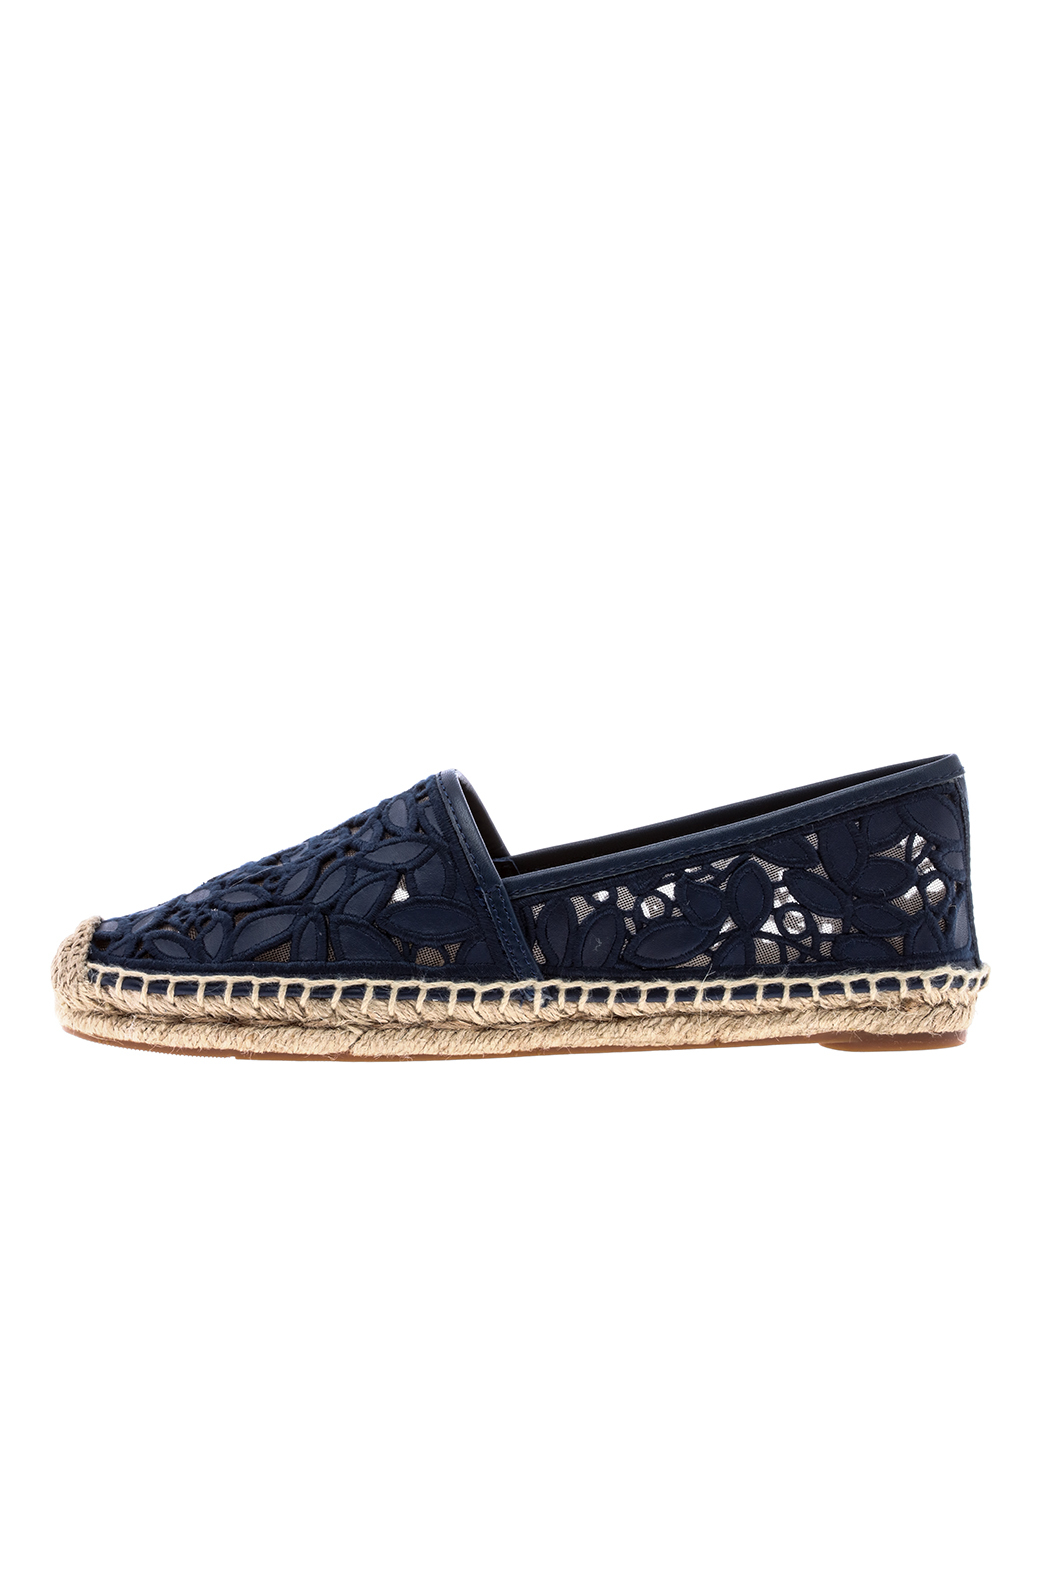 ea920aab8e1 Tory Burch Rhea Espadrille Flat from New Hampshire by Stiletto Shoes ...